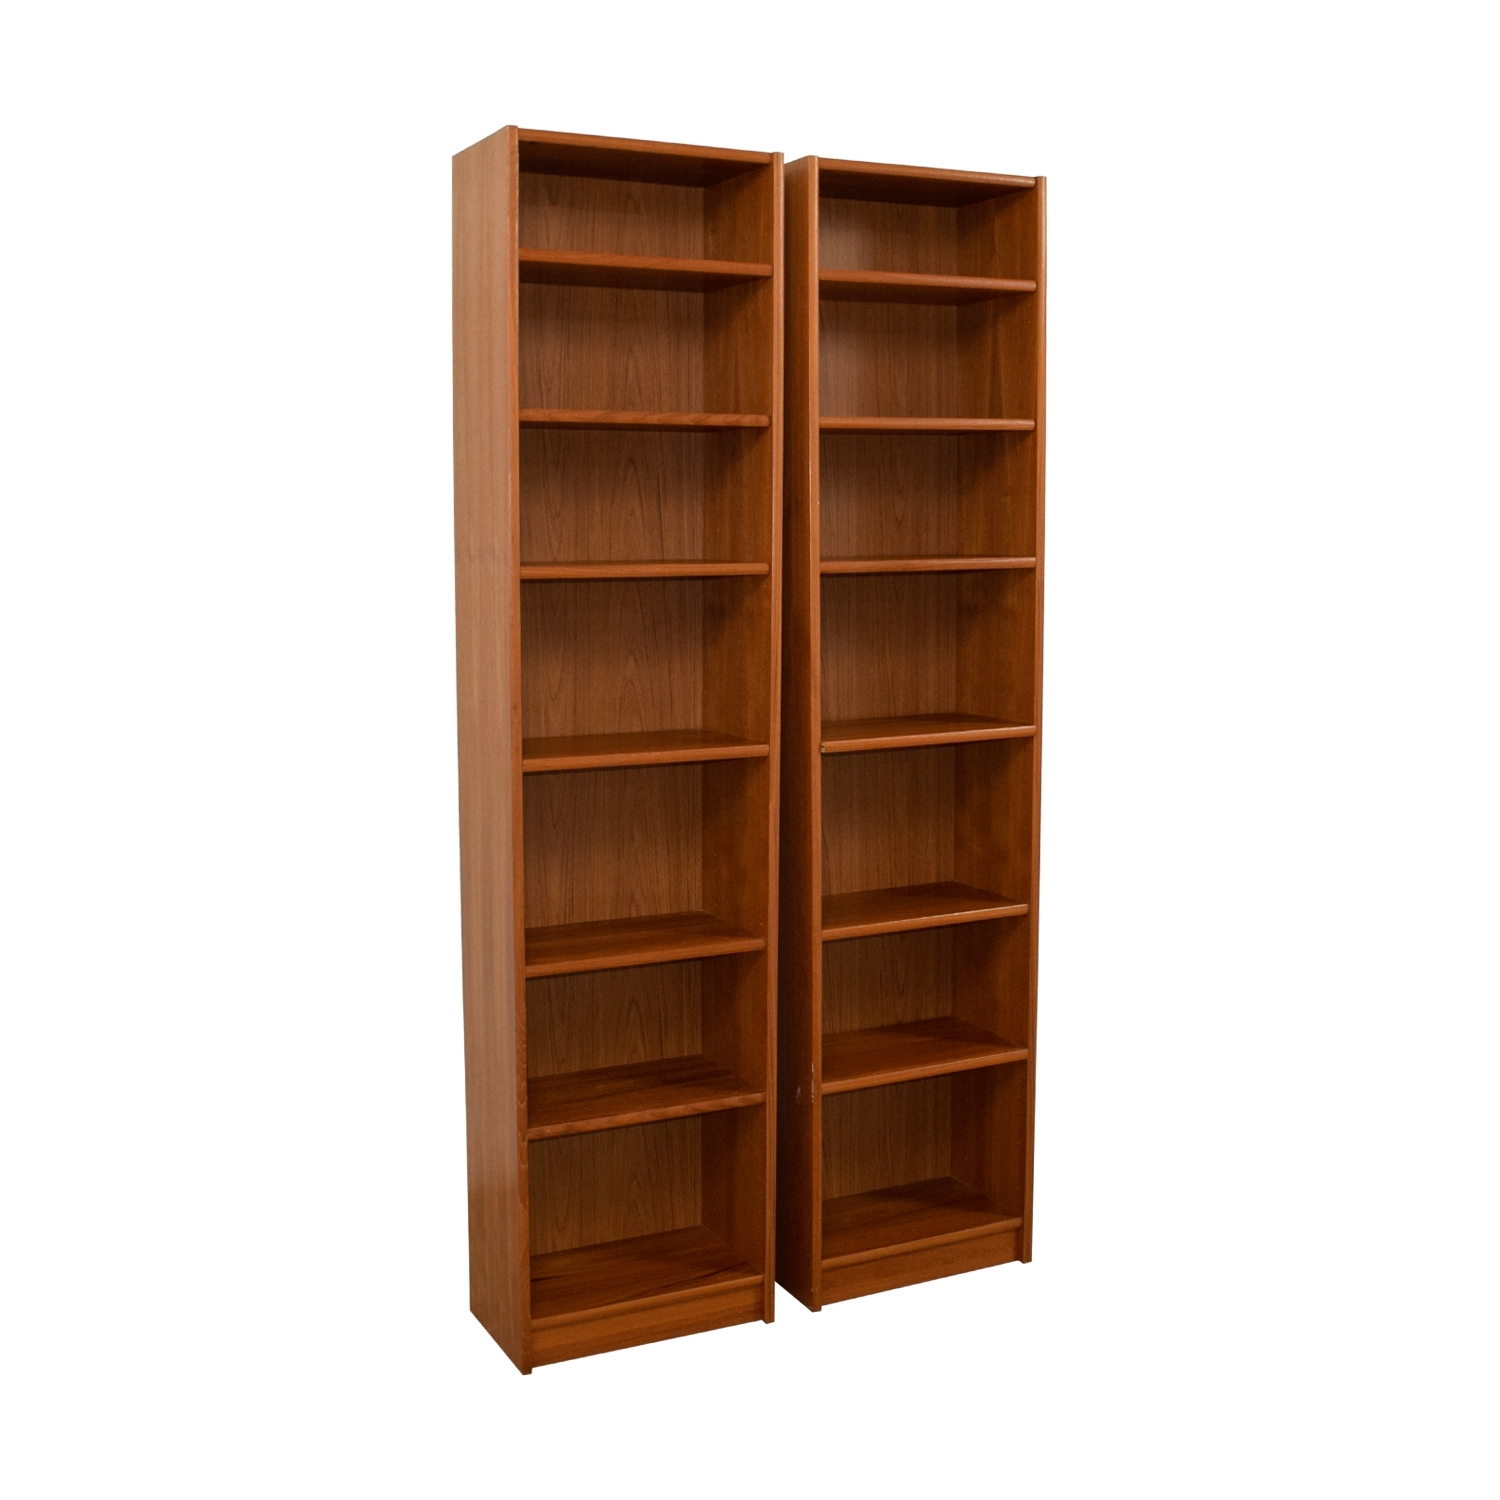 [%48% Off – The Door Store The Door Store Wood Bookcases / Storage Intended For Most Popular Wood Bookcases|Wood Bookcases In Widely Used 48% Off – The Door Store The Door Store Wood Bookcases / Storage|2017 Wood Bookcases Intended For 48% Off – The Door Store The Door Store Wood Bookcases / Storage|2017 48% Off – The Door Store The Door Store Wood Bookcases / Storage Pertaining To Wood Bookcases%] (View 1 of 15)